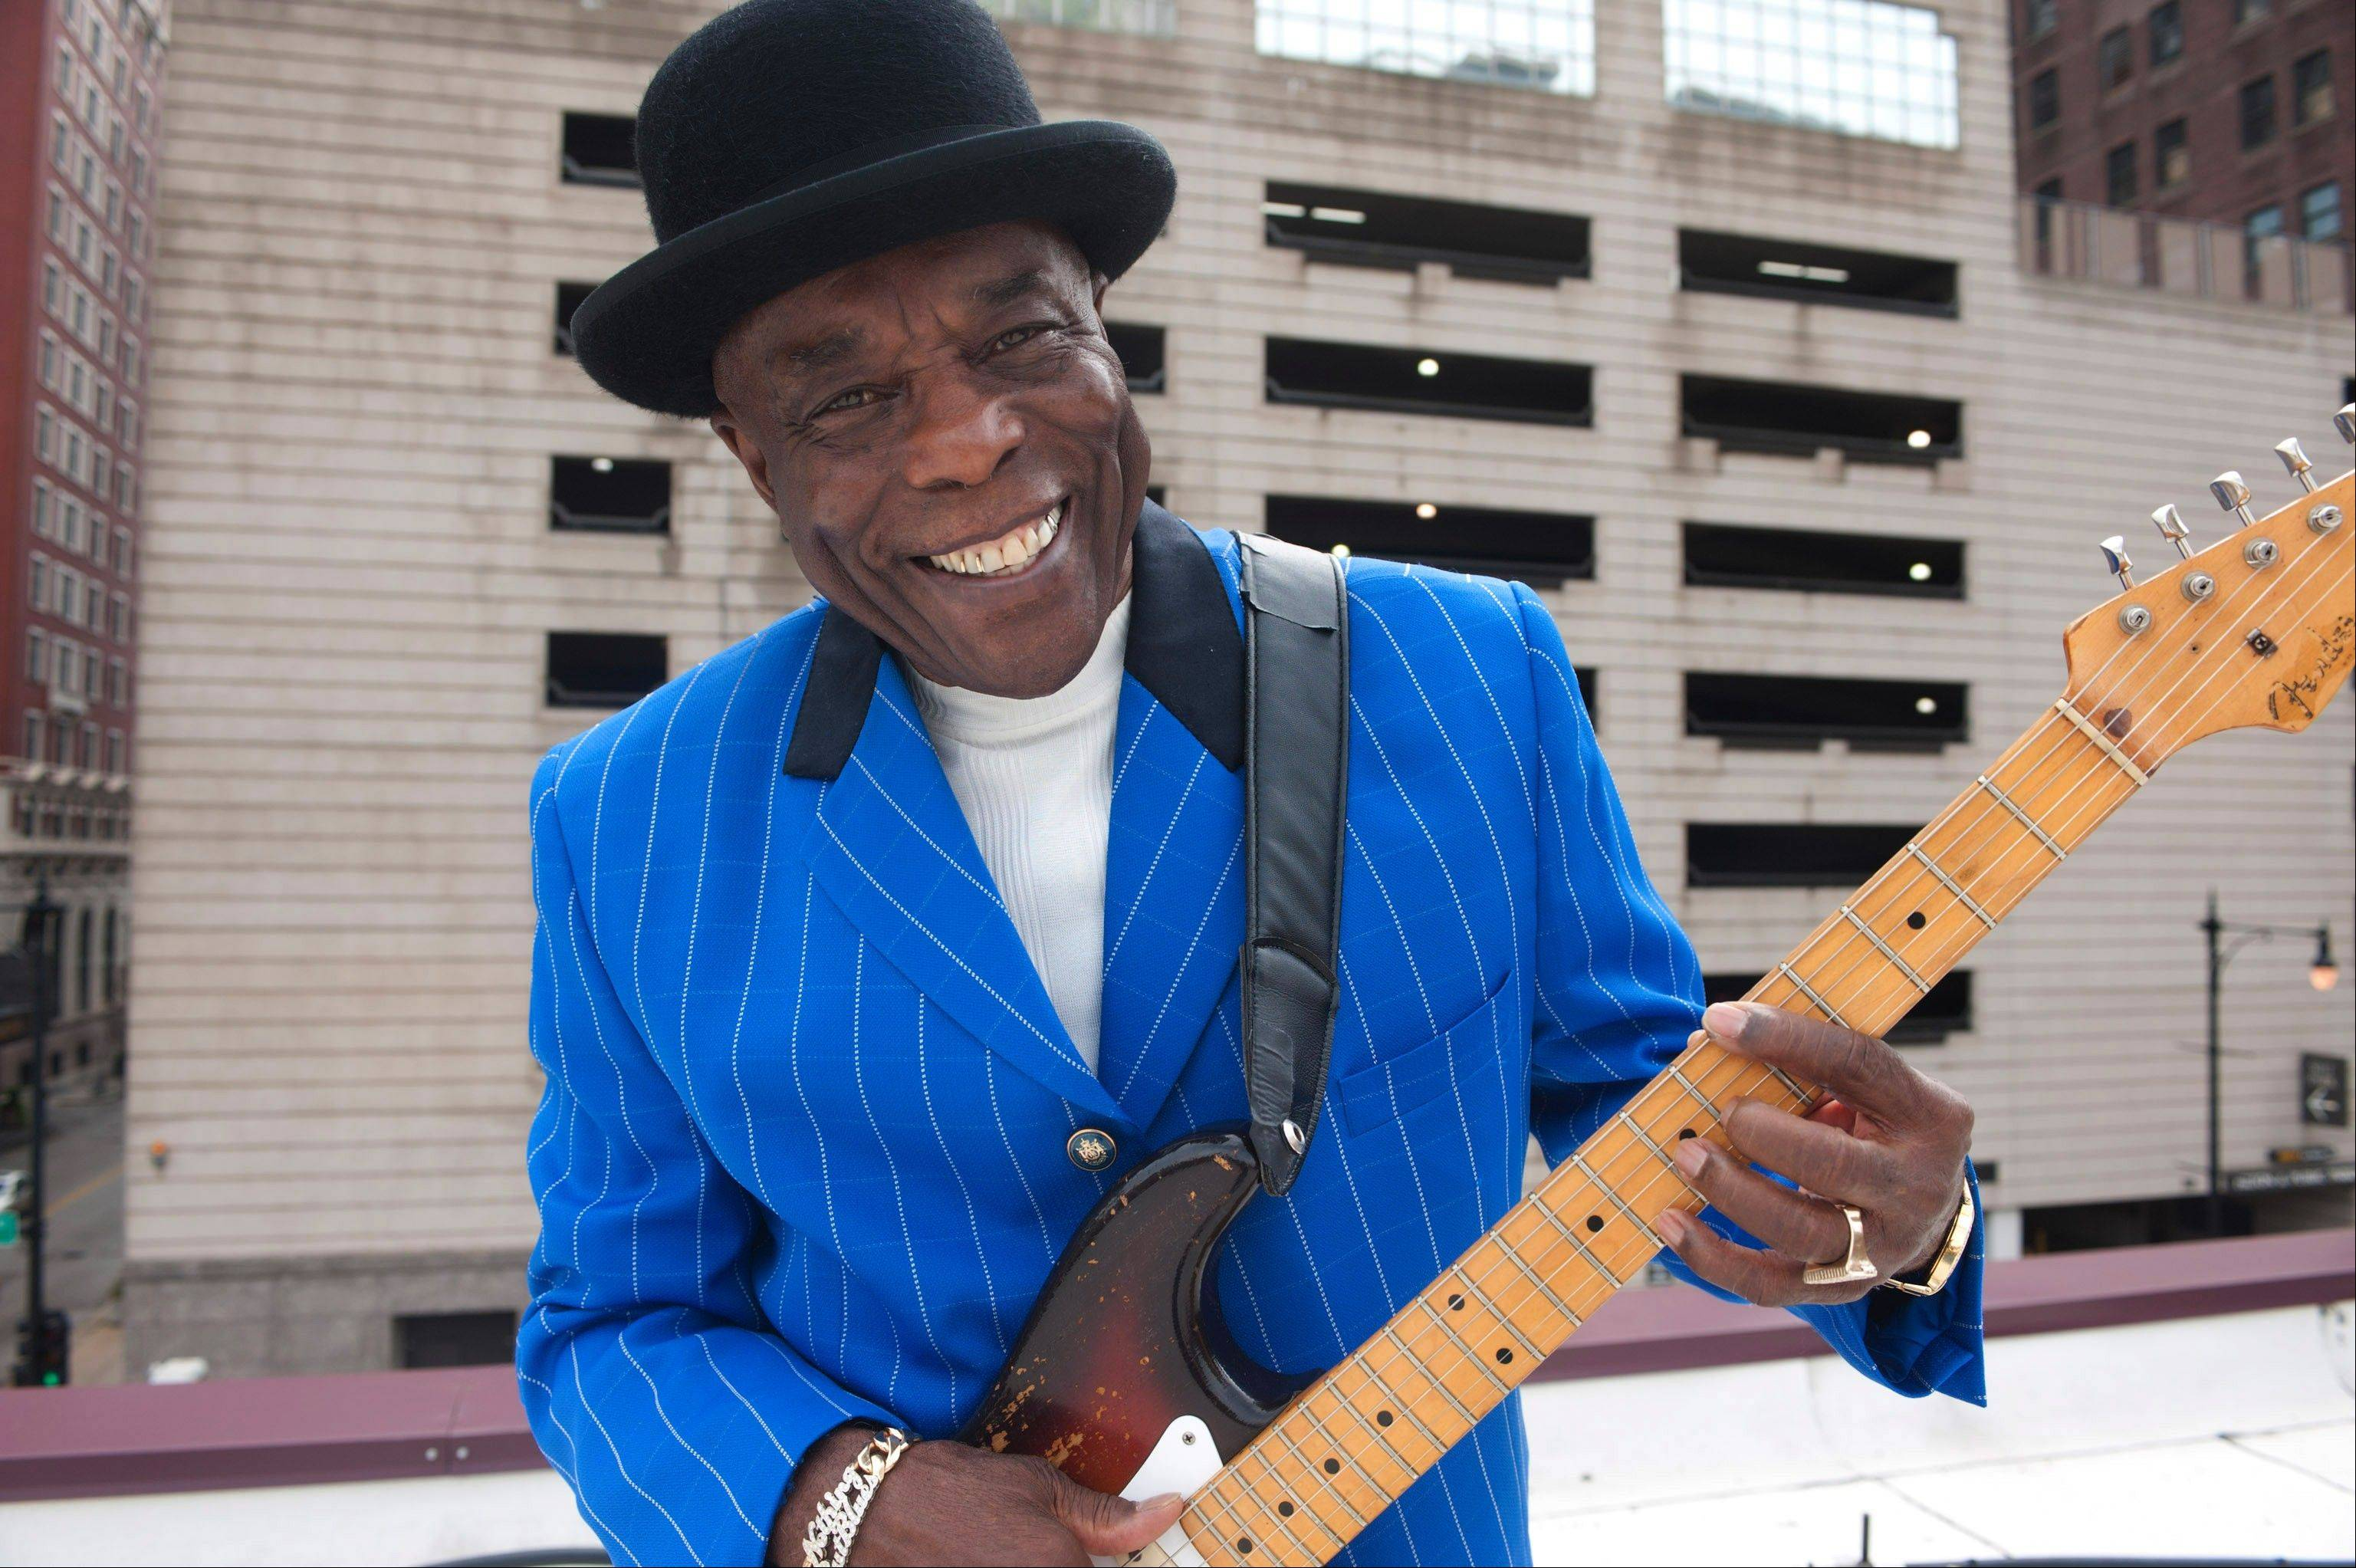 Blues legend Buddy Guy is set to perform at Ravinia in Highland Park on Saturday, Aug. 17.